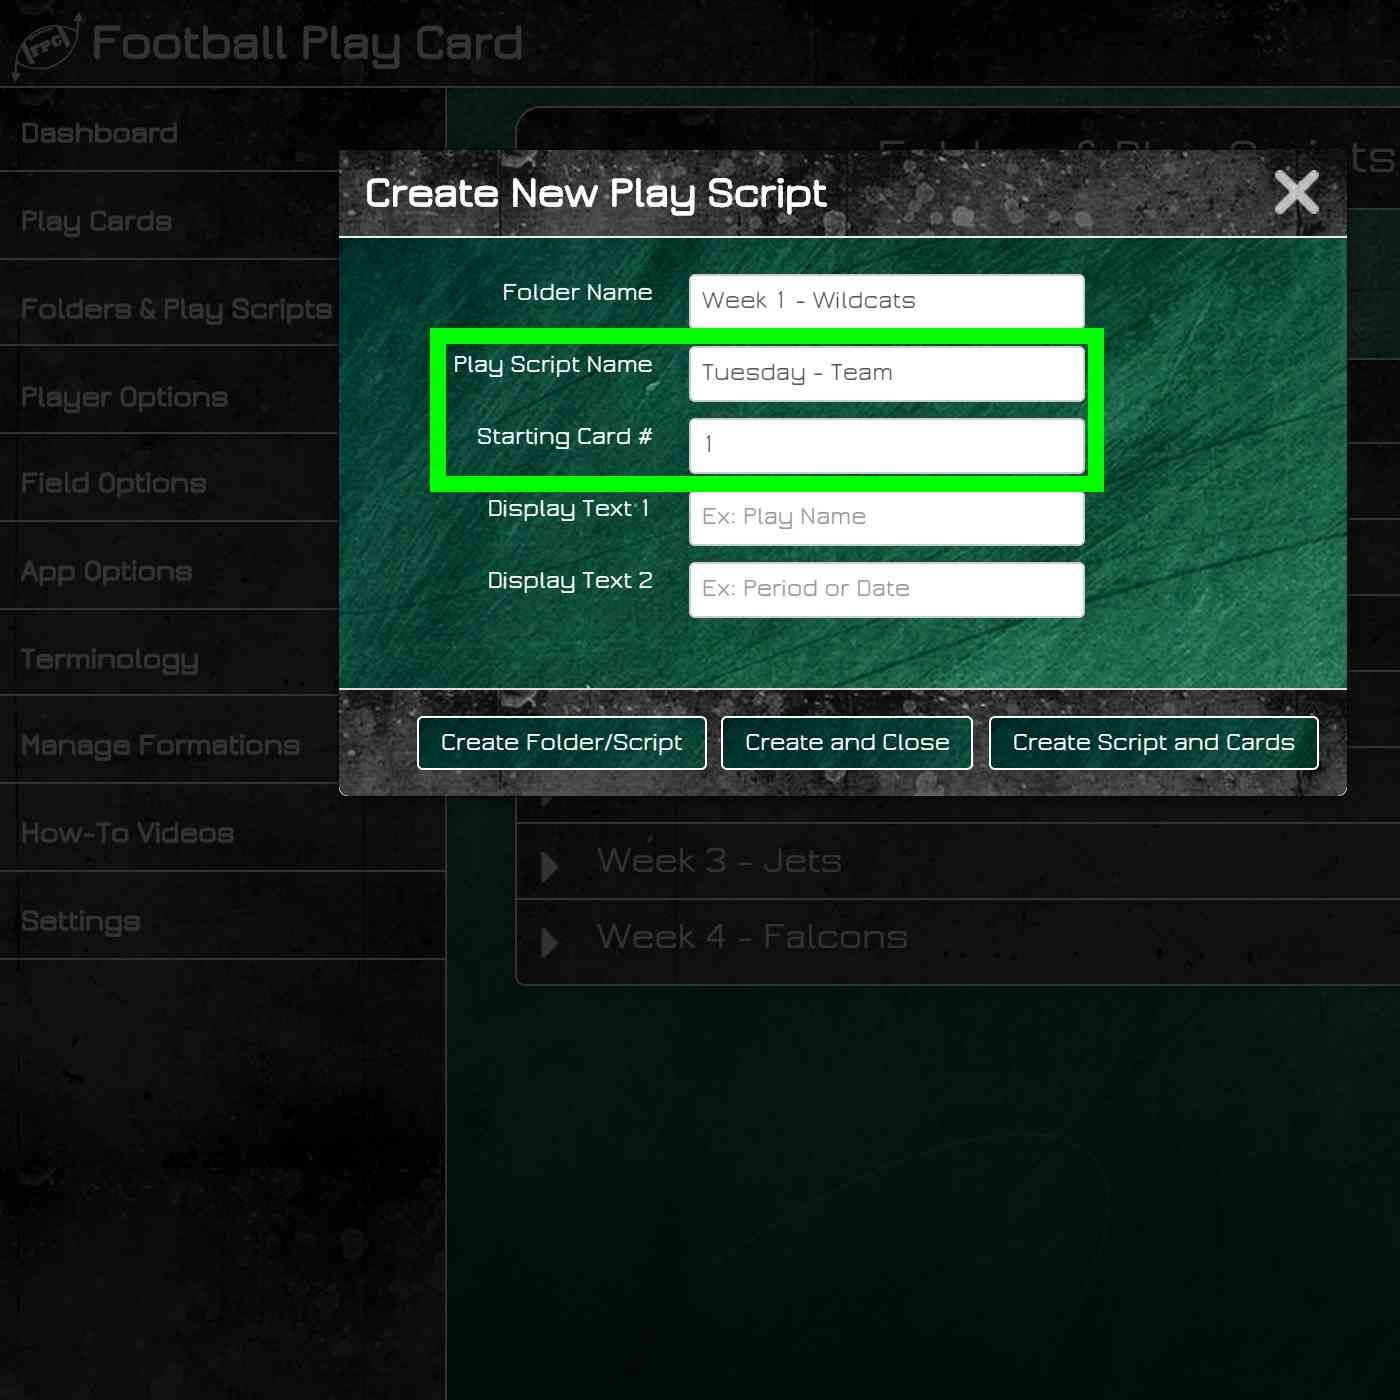 Football Play Card - Folders and Play Scripts